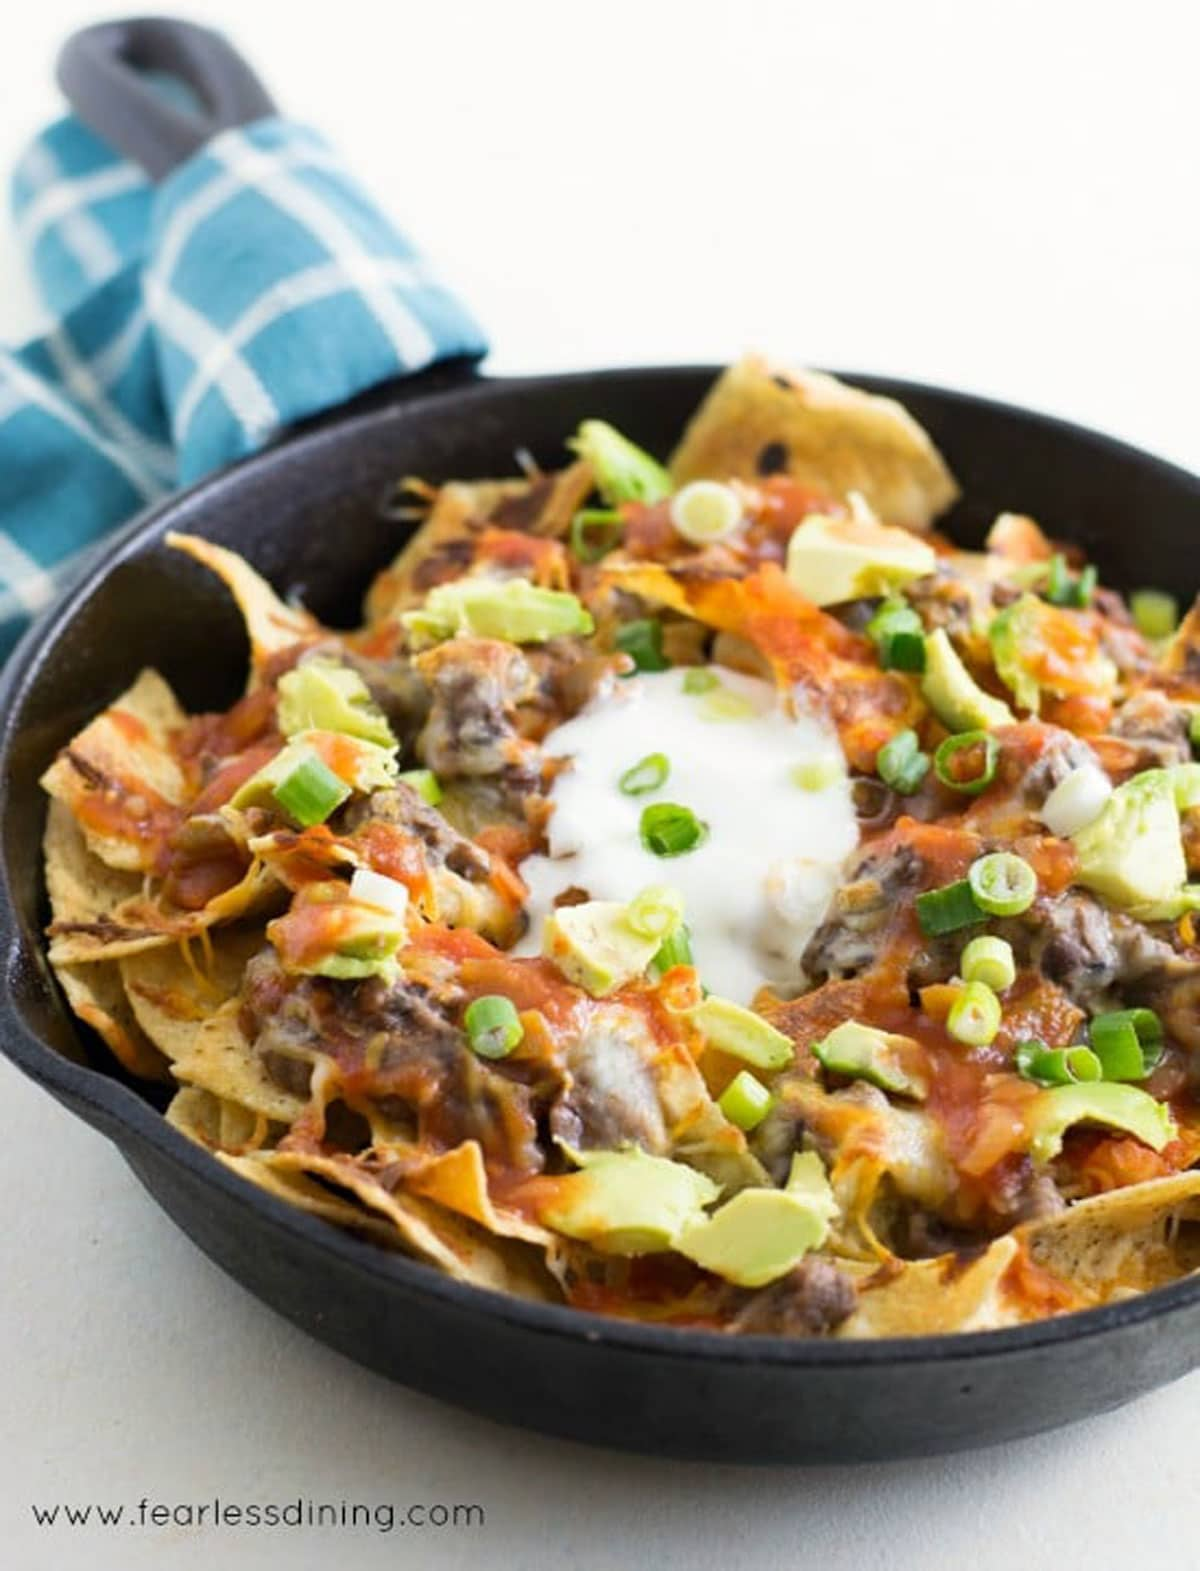 another view of the skillet of black bean dip nachos